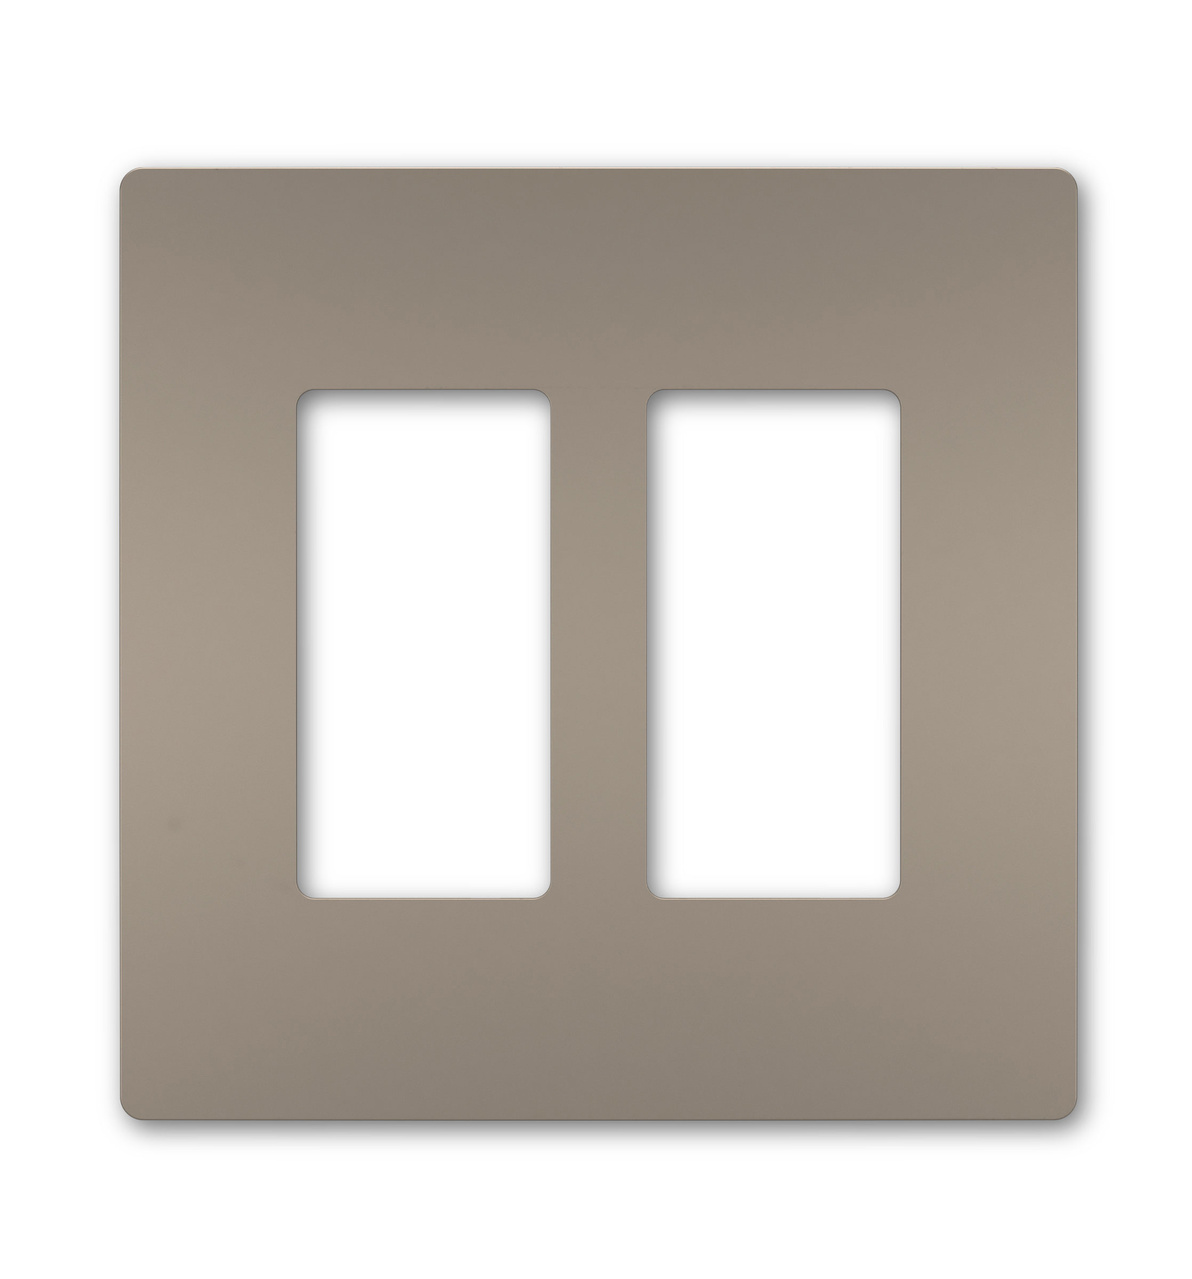 Radiant one gang screwless wall plate nickel legrand rwp262niwhitebkgd two gang screwless wall plate aloadofball Image collections